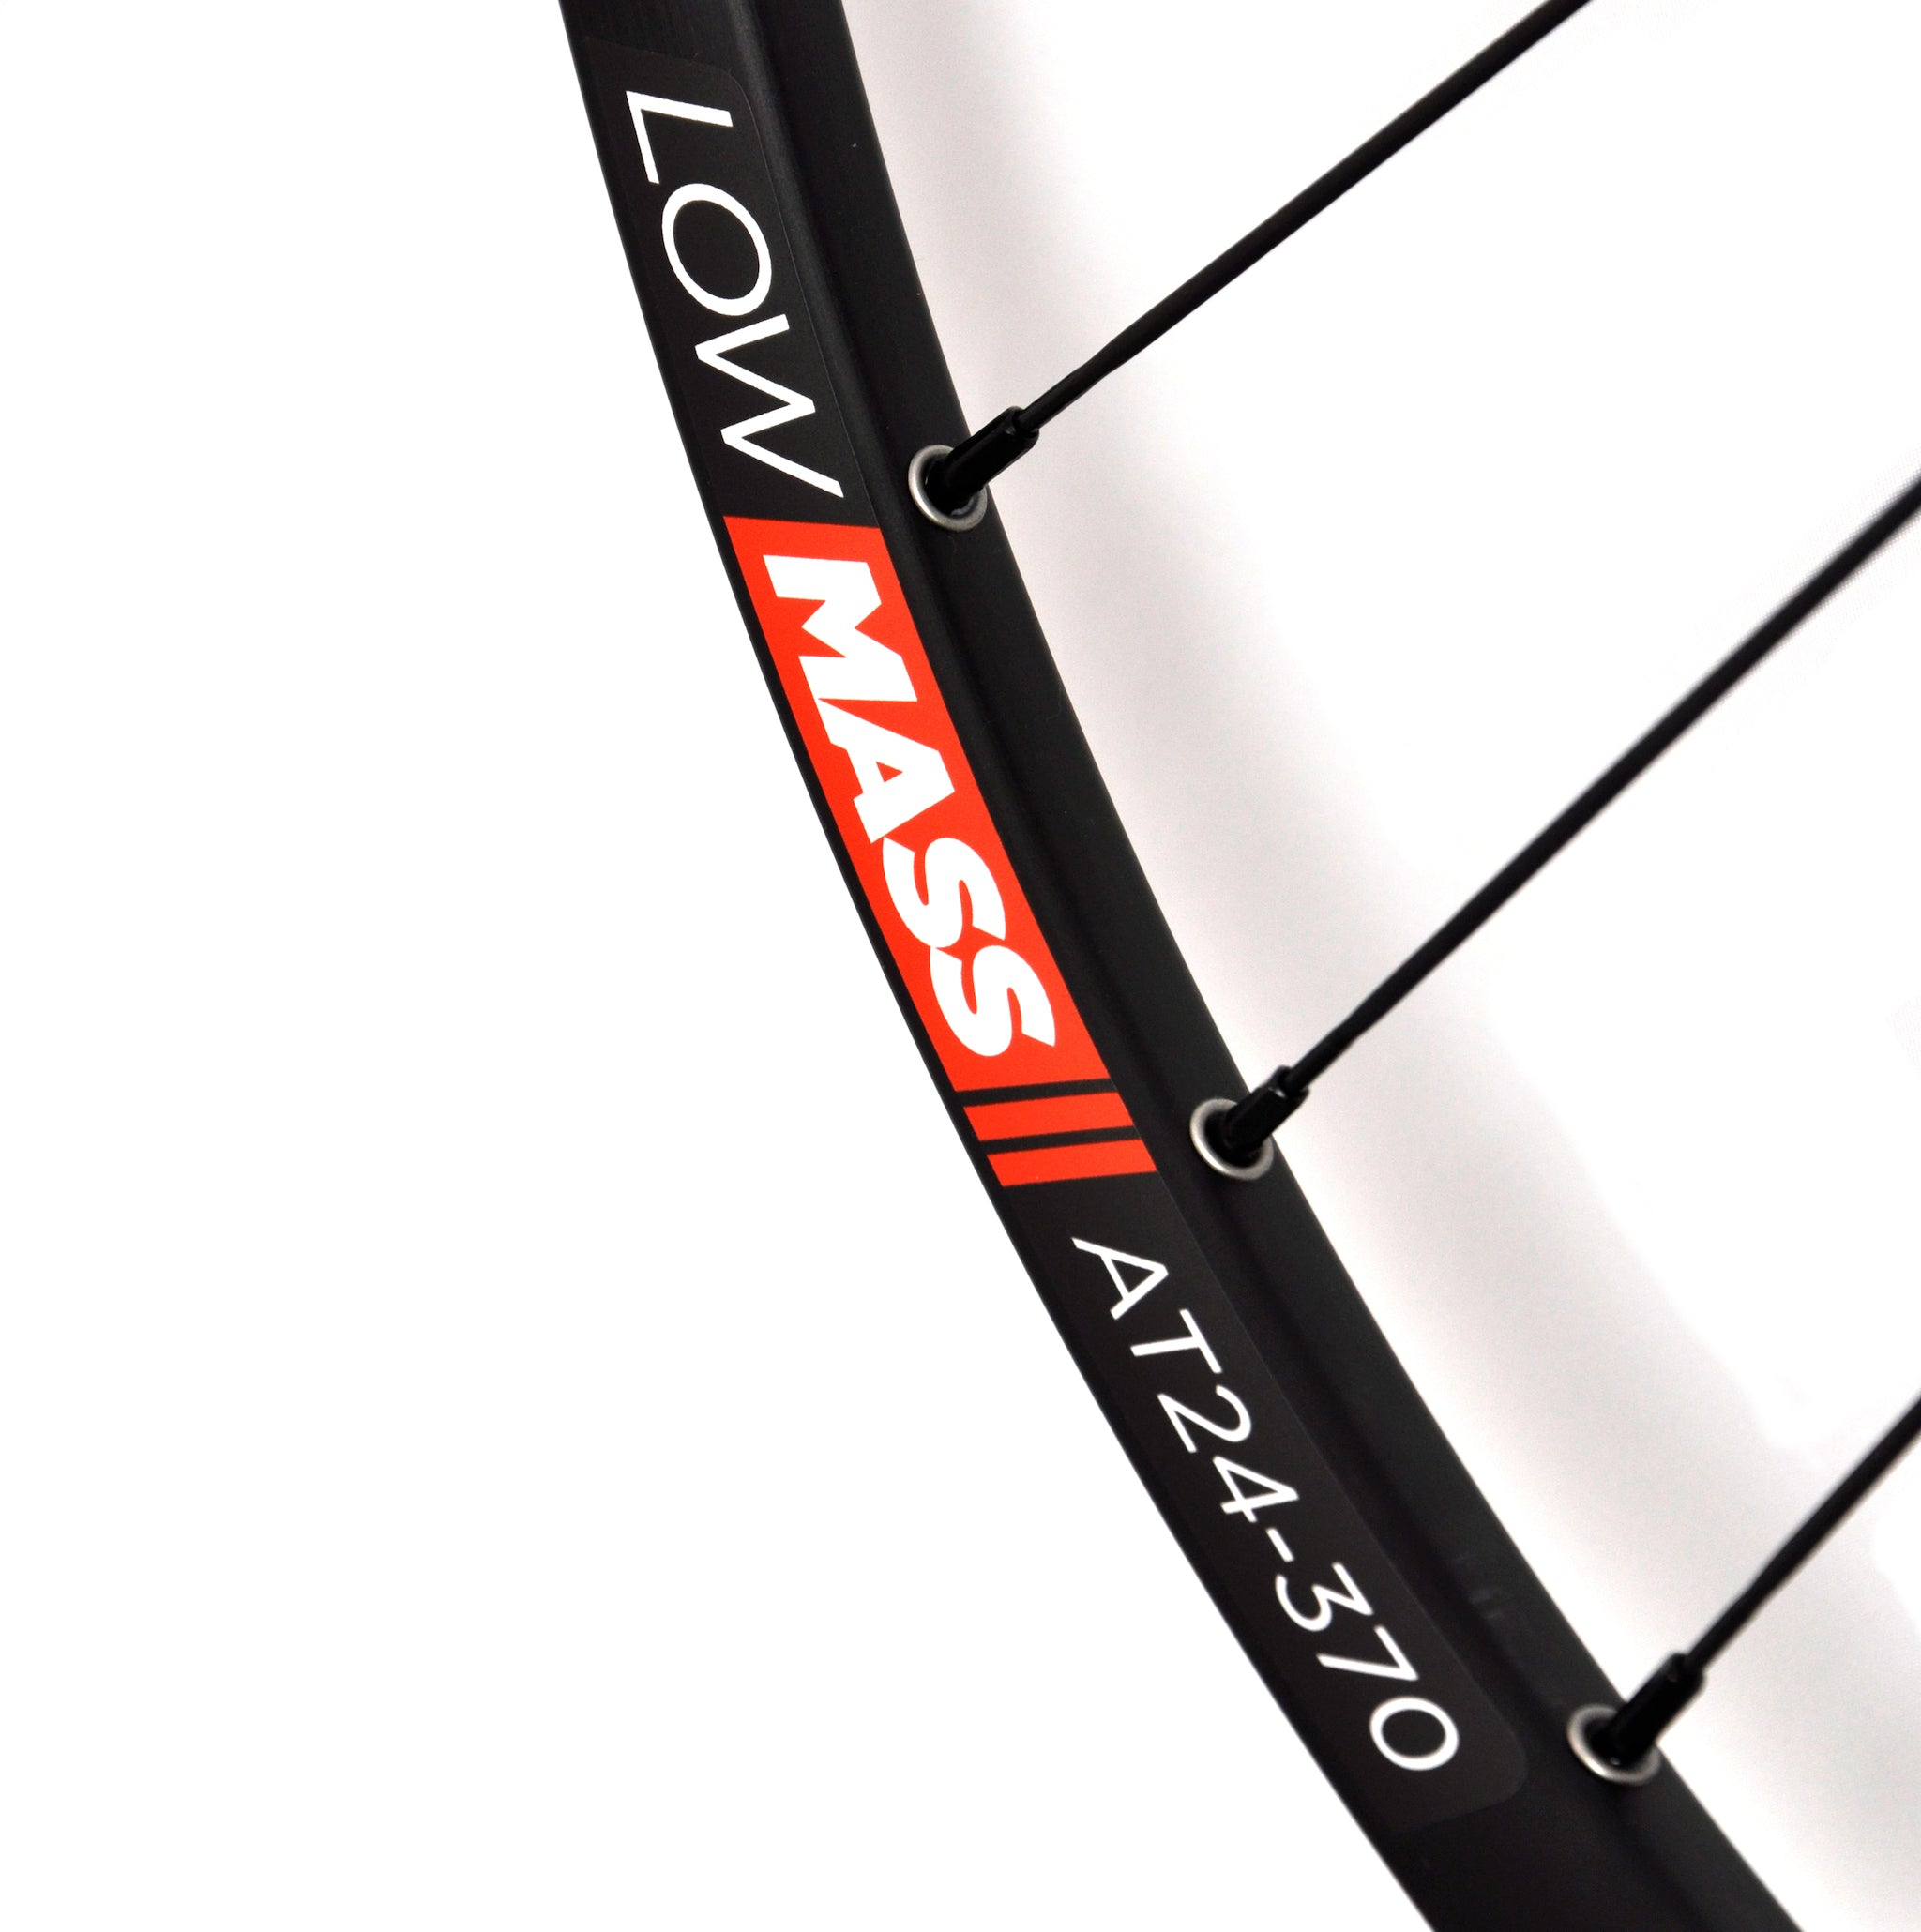 LOWMASS AT24-370 TUBULAR CYCLOCROSS WHEELS with SAPIM CX-RAY SPOKES